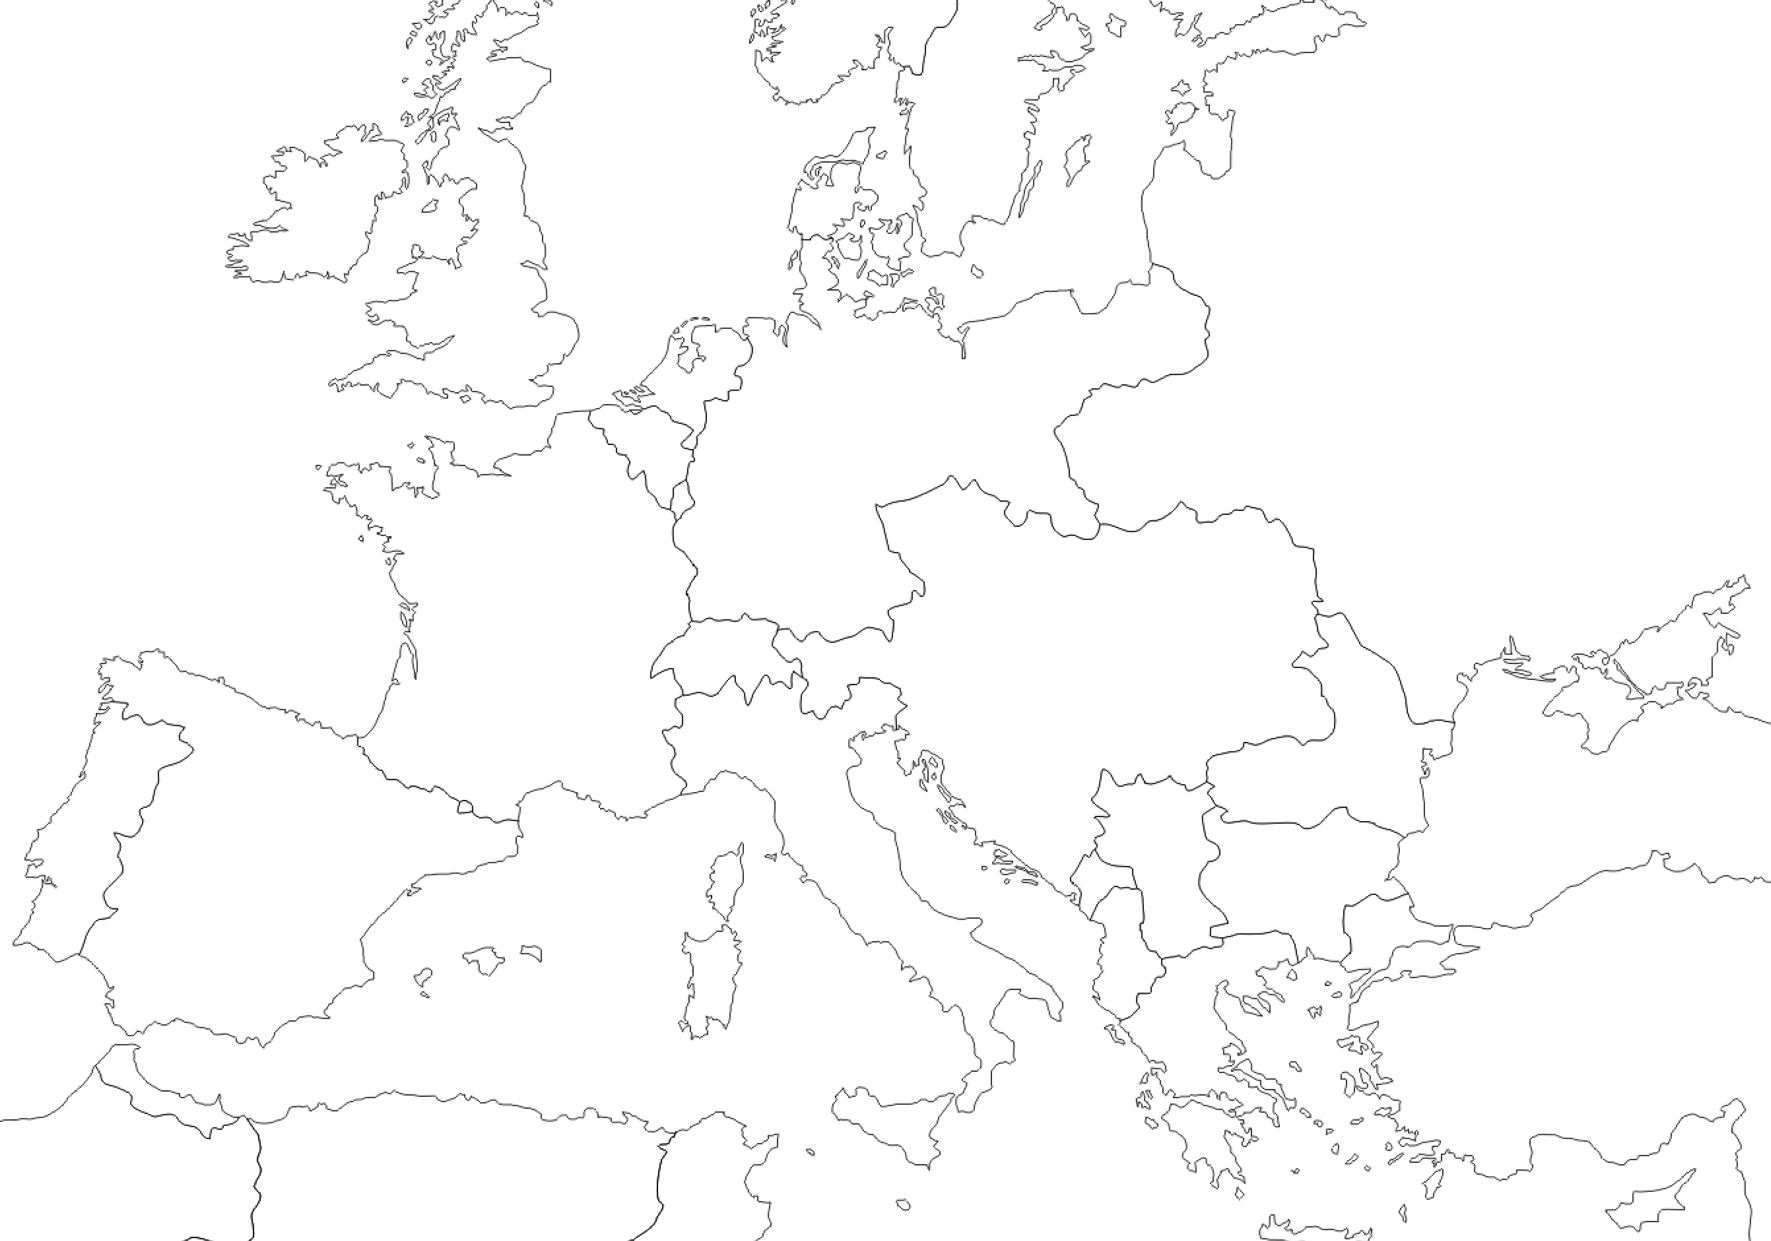 1914 - Outline map of Europe | WWI | Pinterest | Map, Europe and World